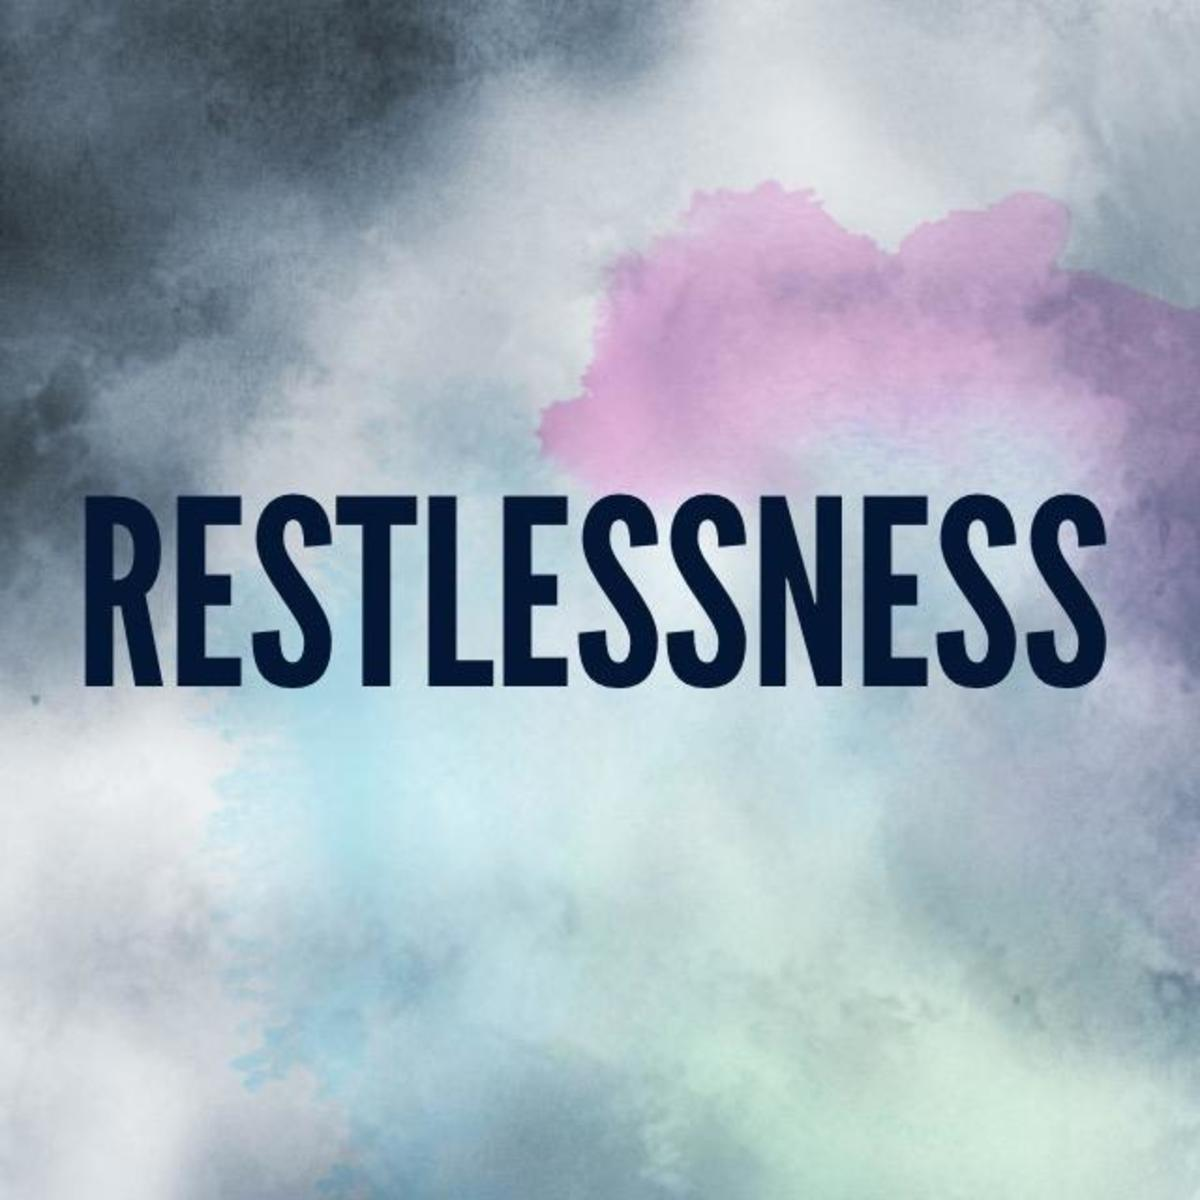 What To Do About Your Restlessness